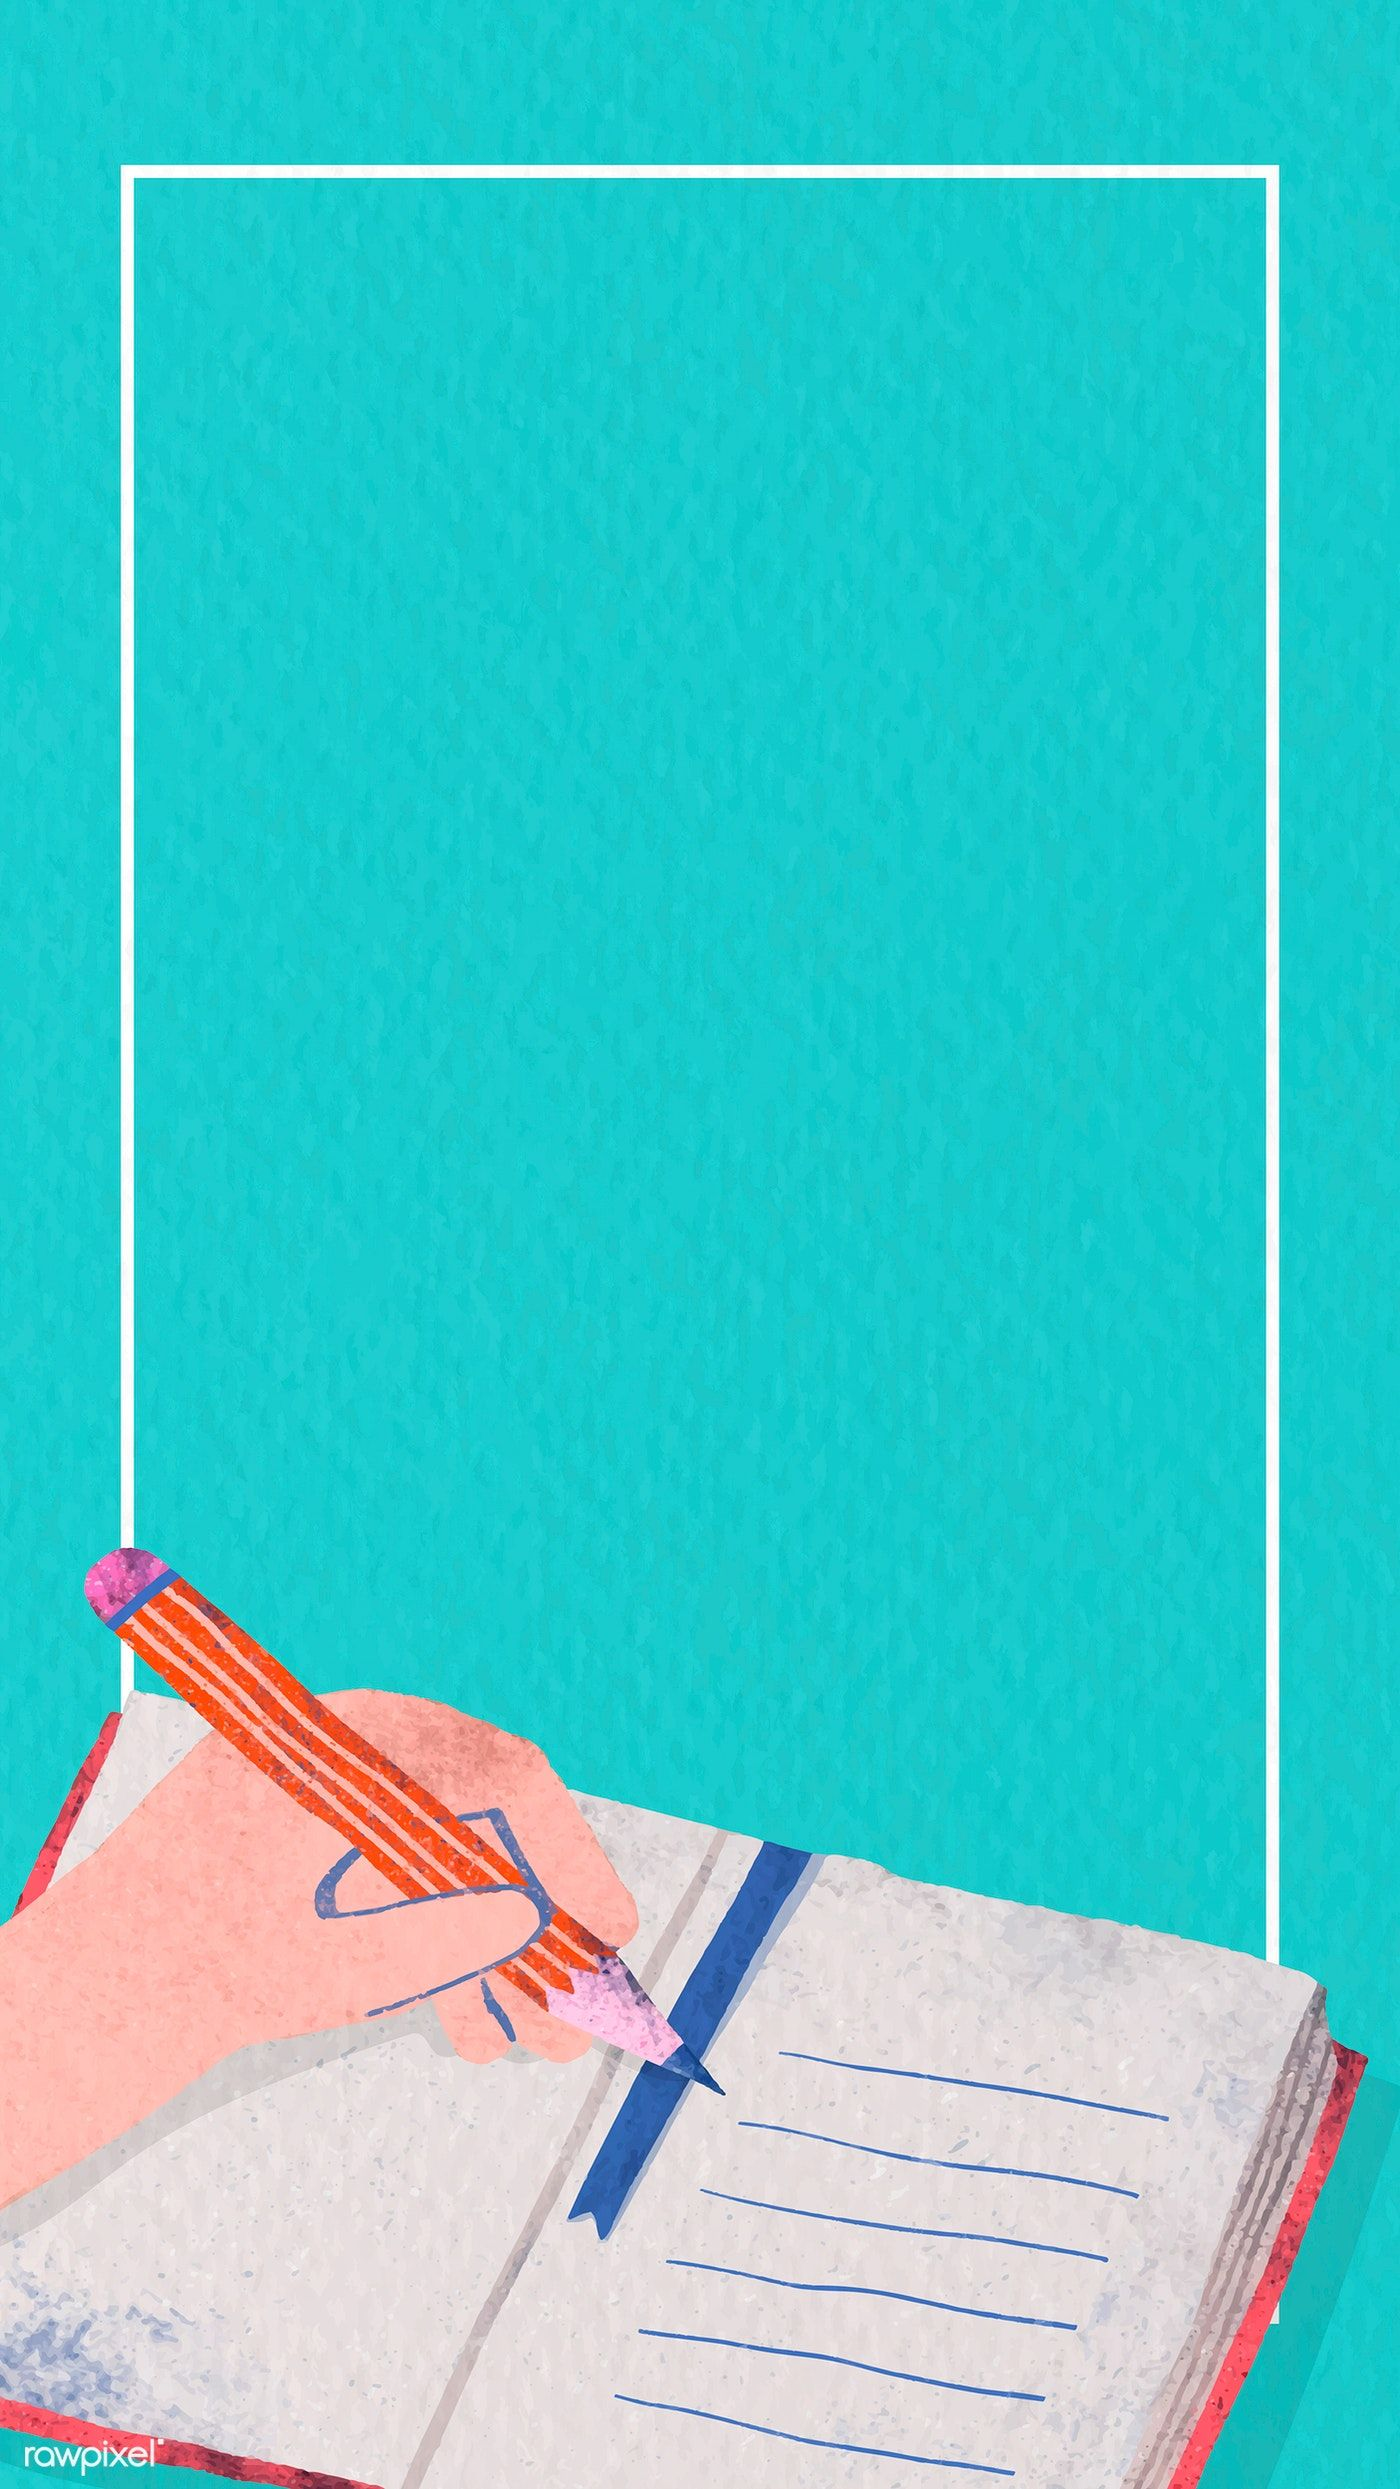 Download Premium Vector Of Rectangle Back To School Frame Mobile Phone School Frame Back To School Wallpaper Powerpoint Background Design